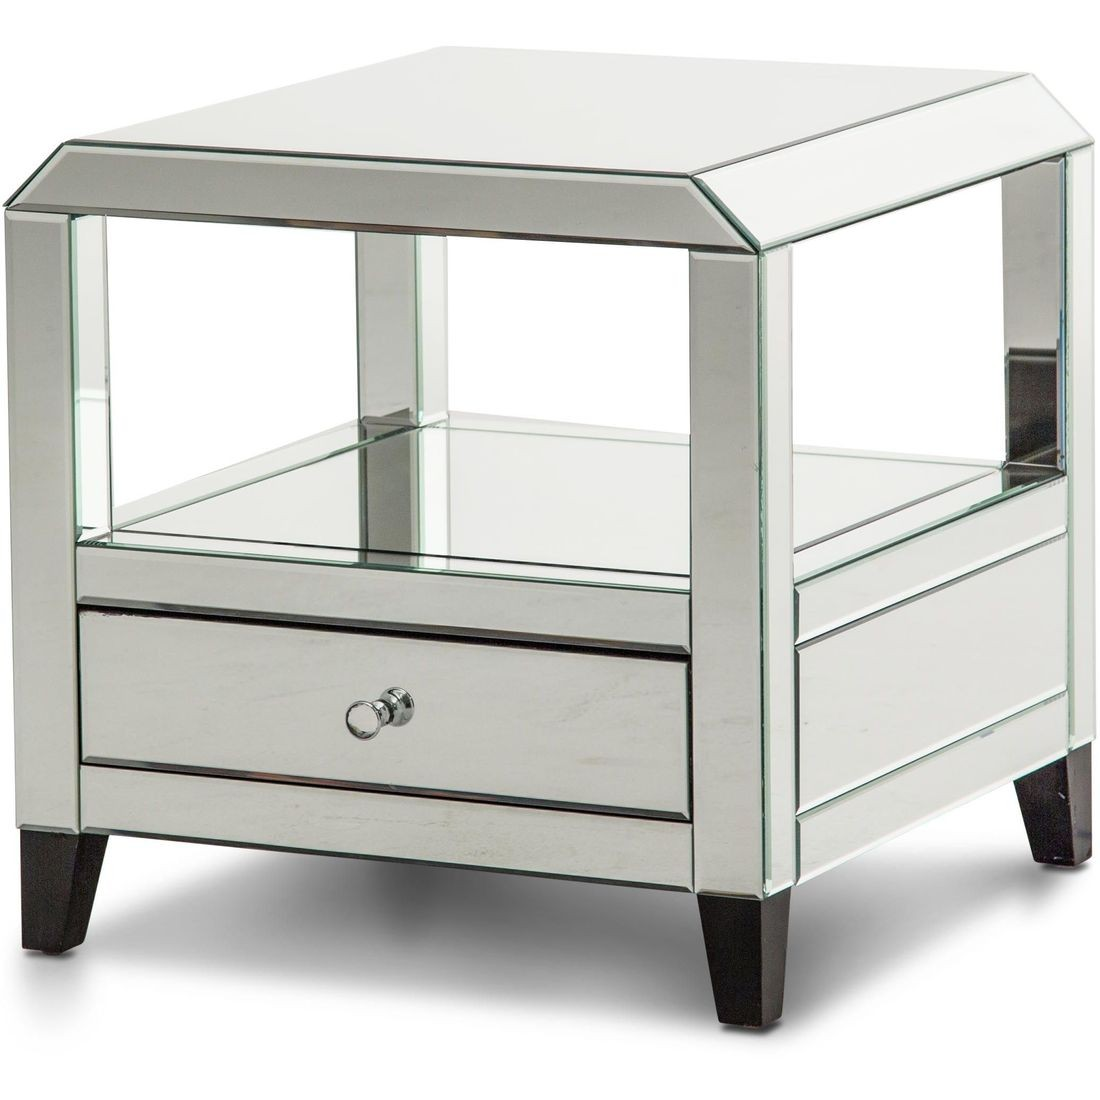 aico montreal mirrored square accent table with drawer local glass amish made furniture white dining set cordless reading floor lamps modern armoire ikea patio umbrella house